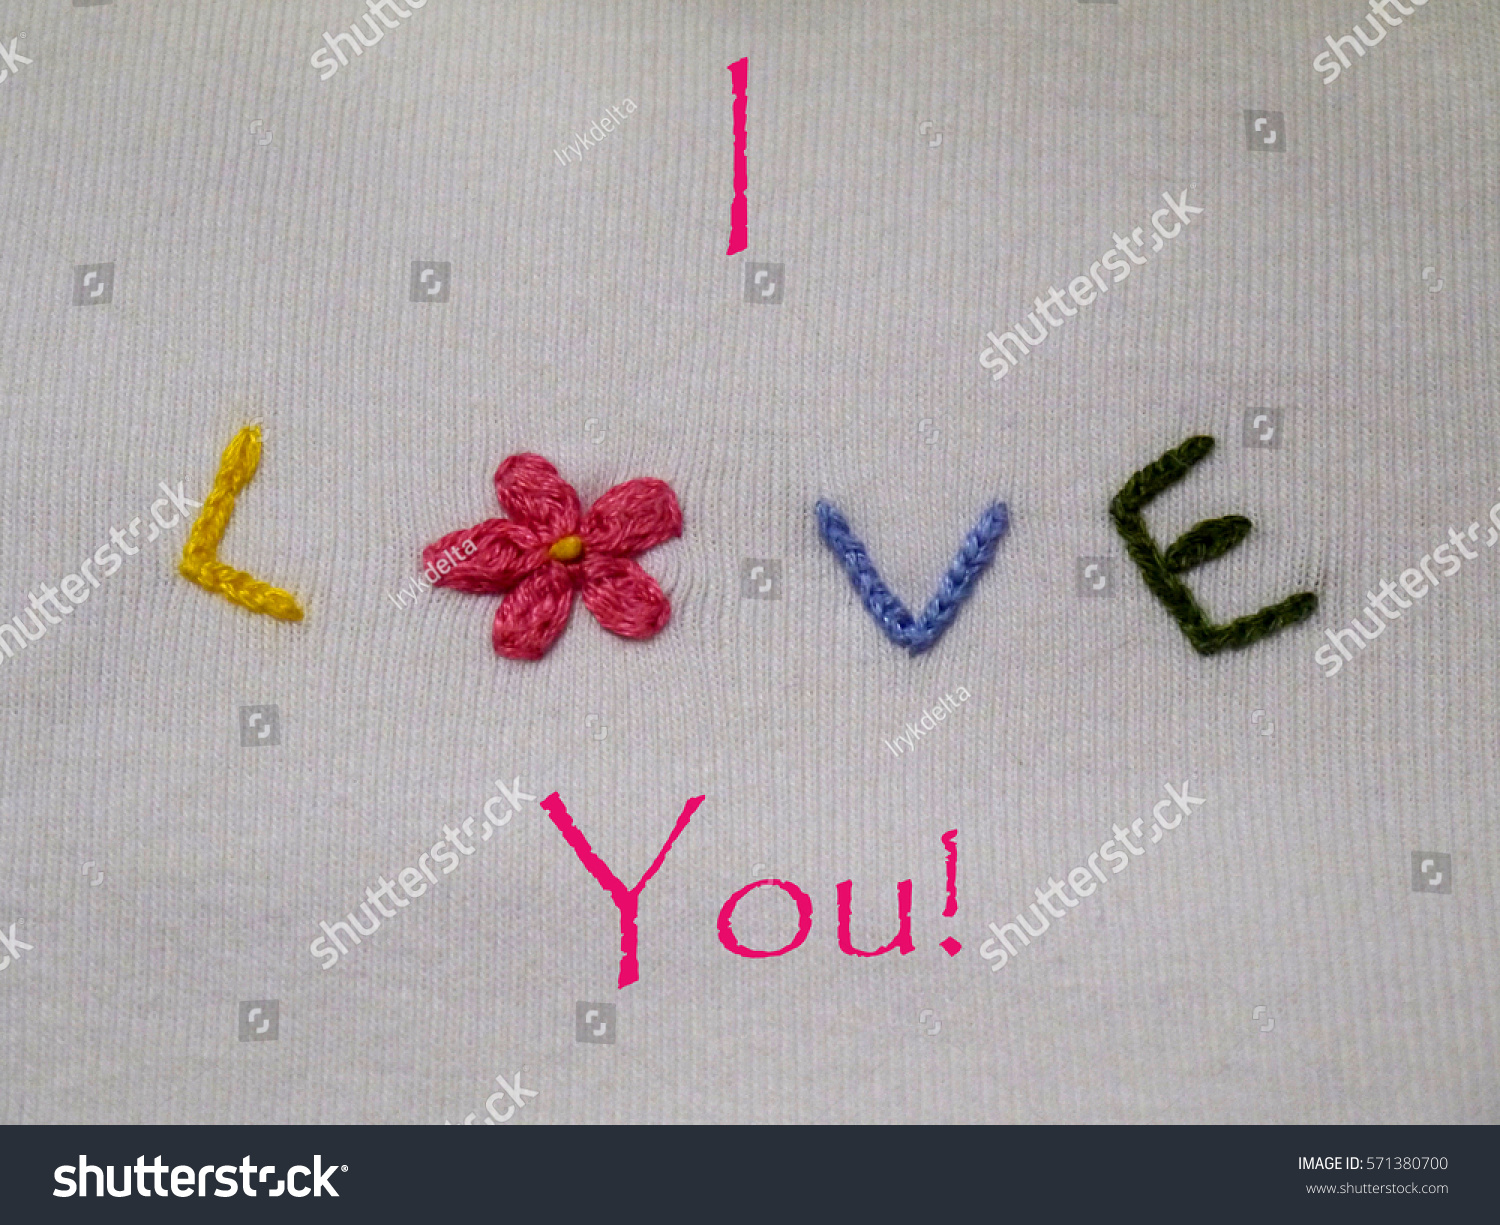 Hand Embroidery On White Fabric Embroidered Stock Photo Edit Now